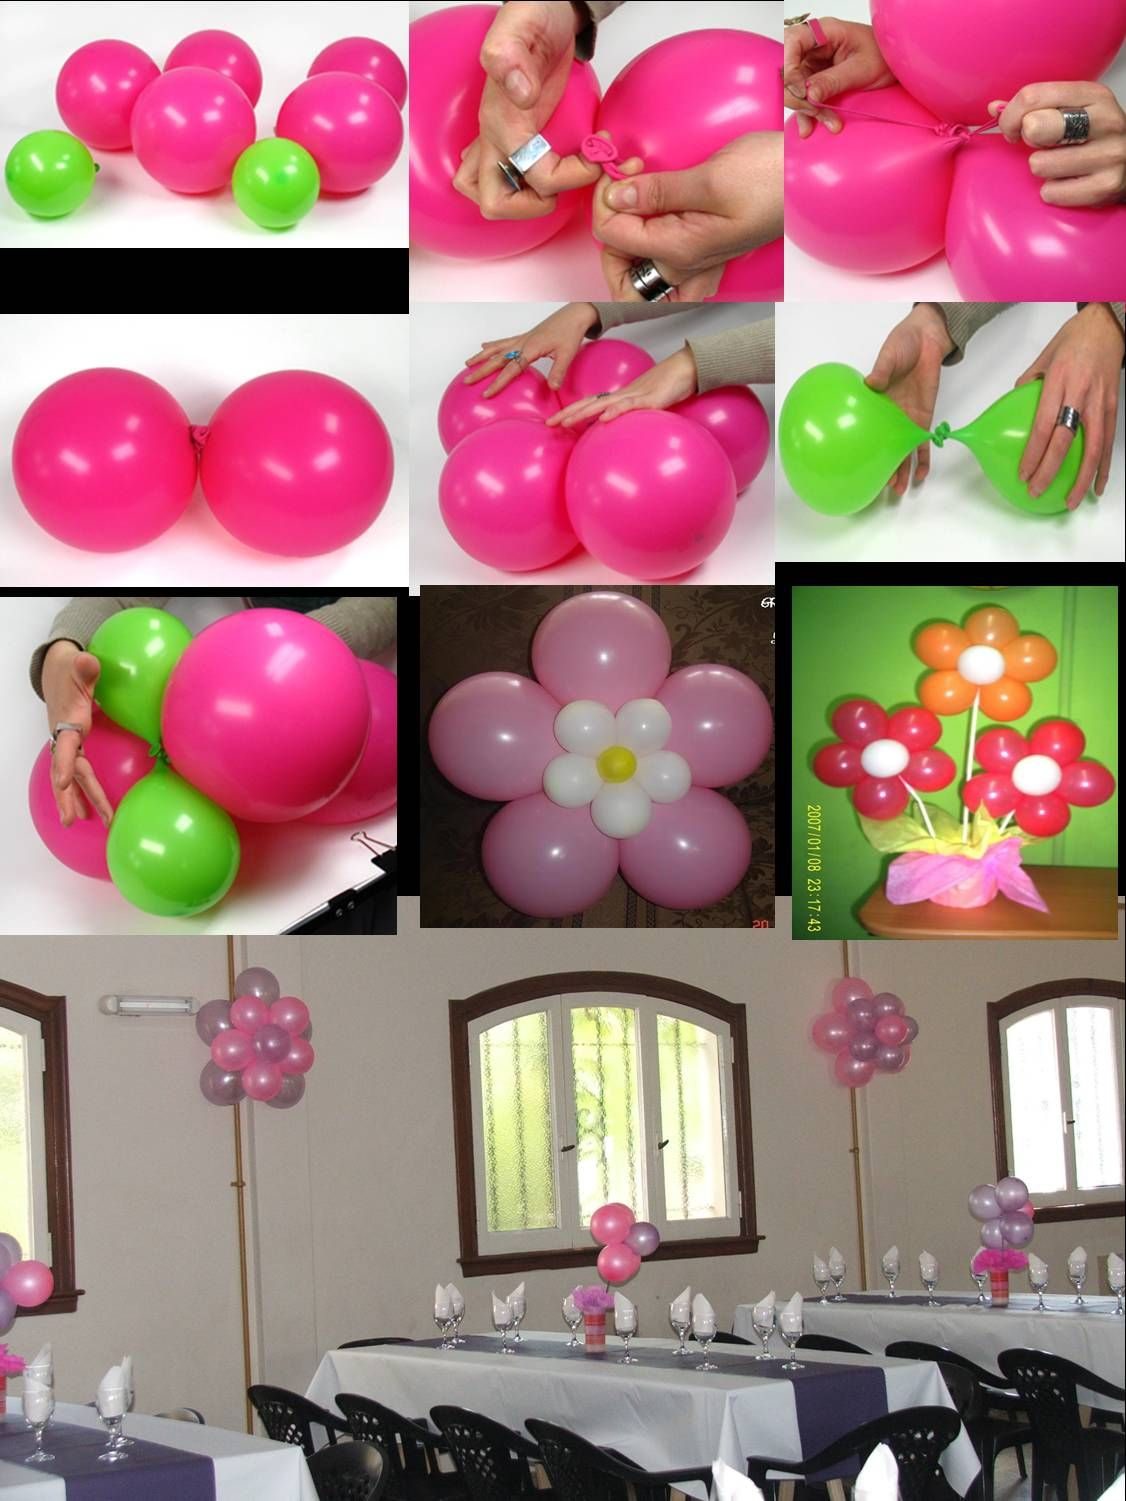 Como decorar un salon de fiestas con flores de globos - Decoracion de salon ...